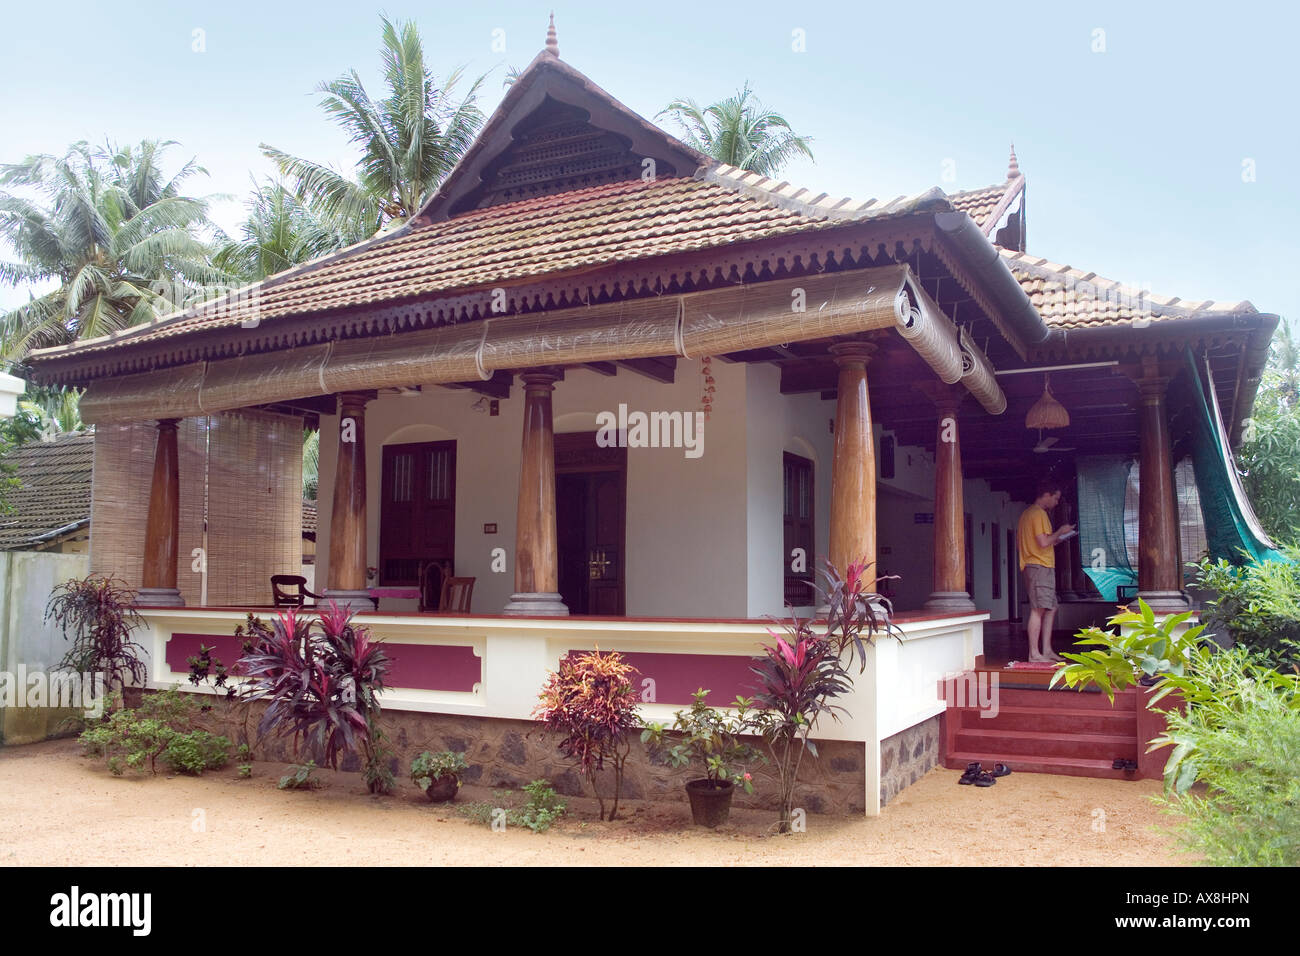 Keralite Bungalow Styled After Traditional Kerala House